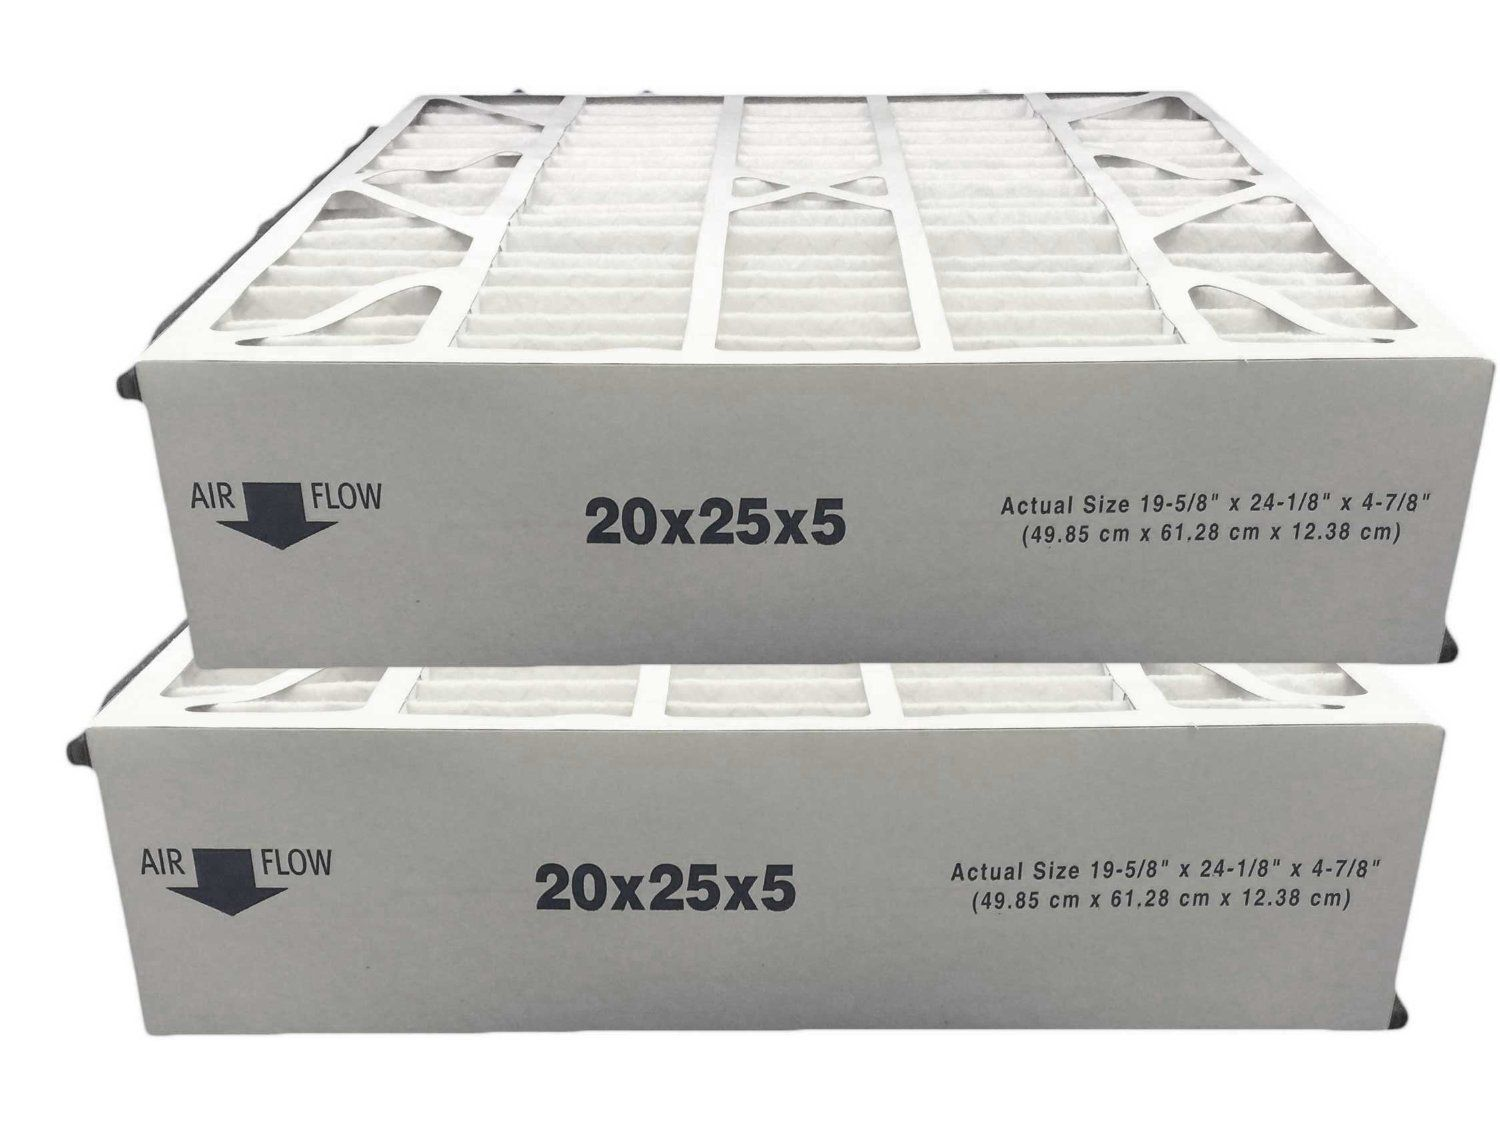 20x25x5 Air Filter Bear Trion 3Pack in 2020 Air filter